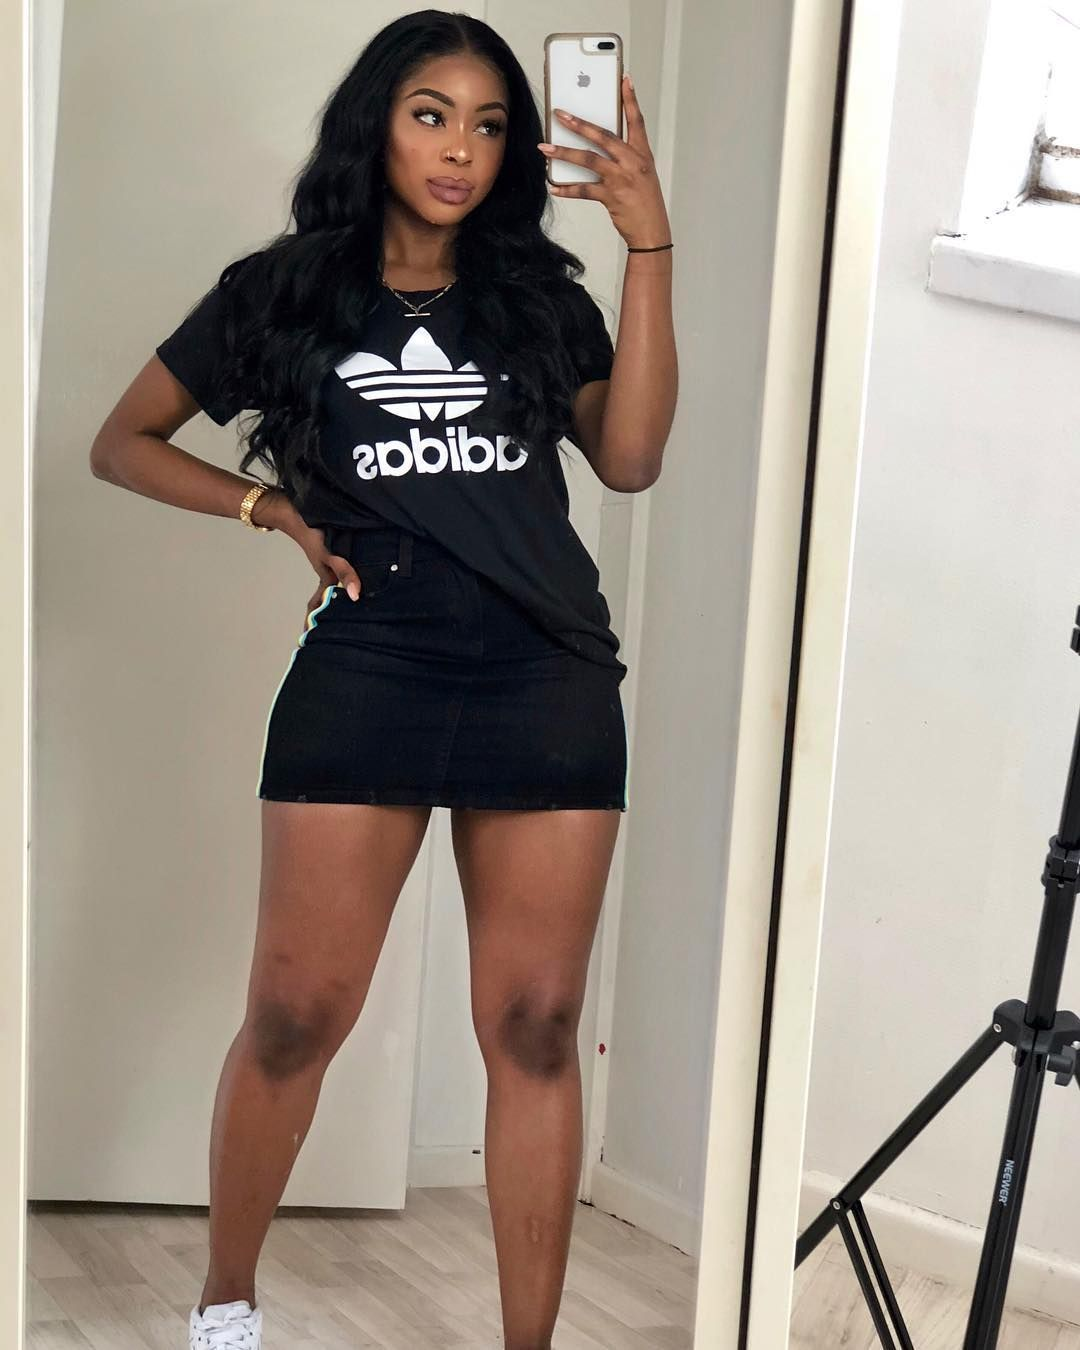 """WUNMI BELLO on Instagram """"So summer is not actually summer in London  Cold asf right now in my mini skirt!! Anywho, who is going wizkid tomorrow 👀"""" is part of Mini skirts - 6,021 Likes, 51 Comments  WUNMI BELLO (@wunmibello) on Instagram """"So summer is not actually summer in London  Cold asf right now in my mini skirt!! Anywho, who is…"""""""